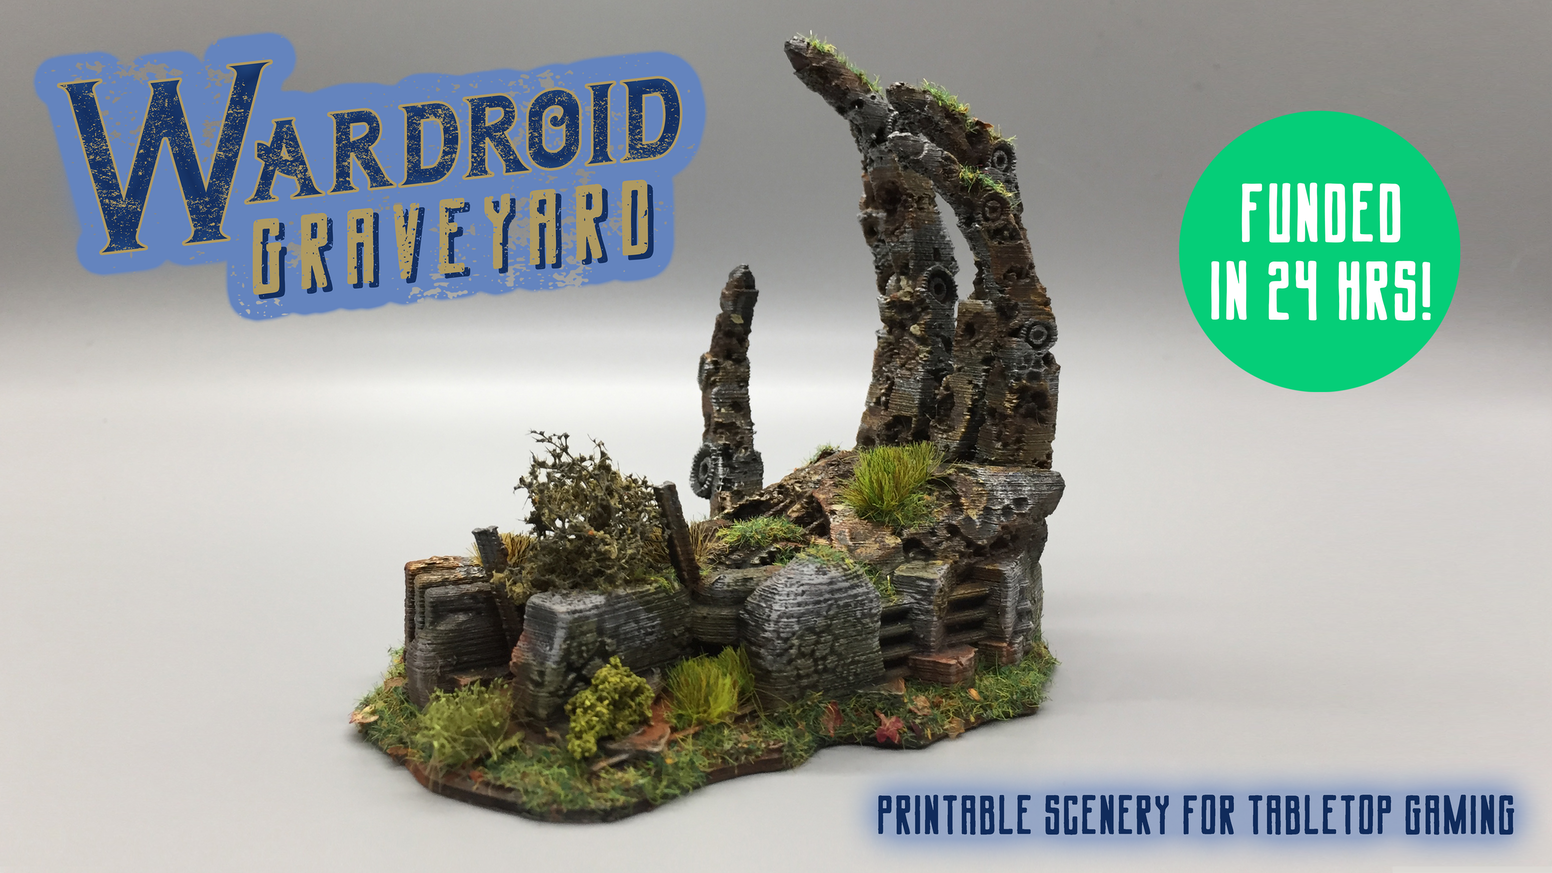 A collection of 3D printable STL files for tabletop gaming. A post-apocalyptic wasteland filled with the remnants of giant Wardroids.